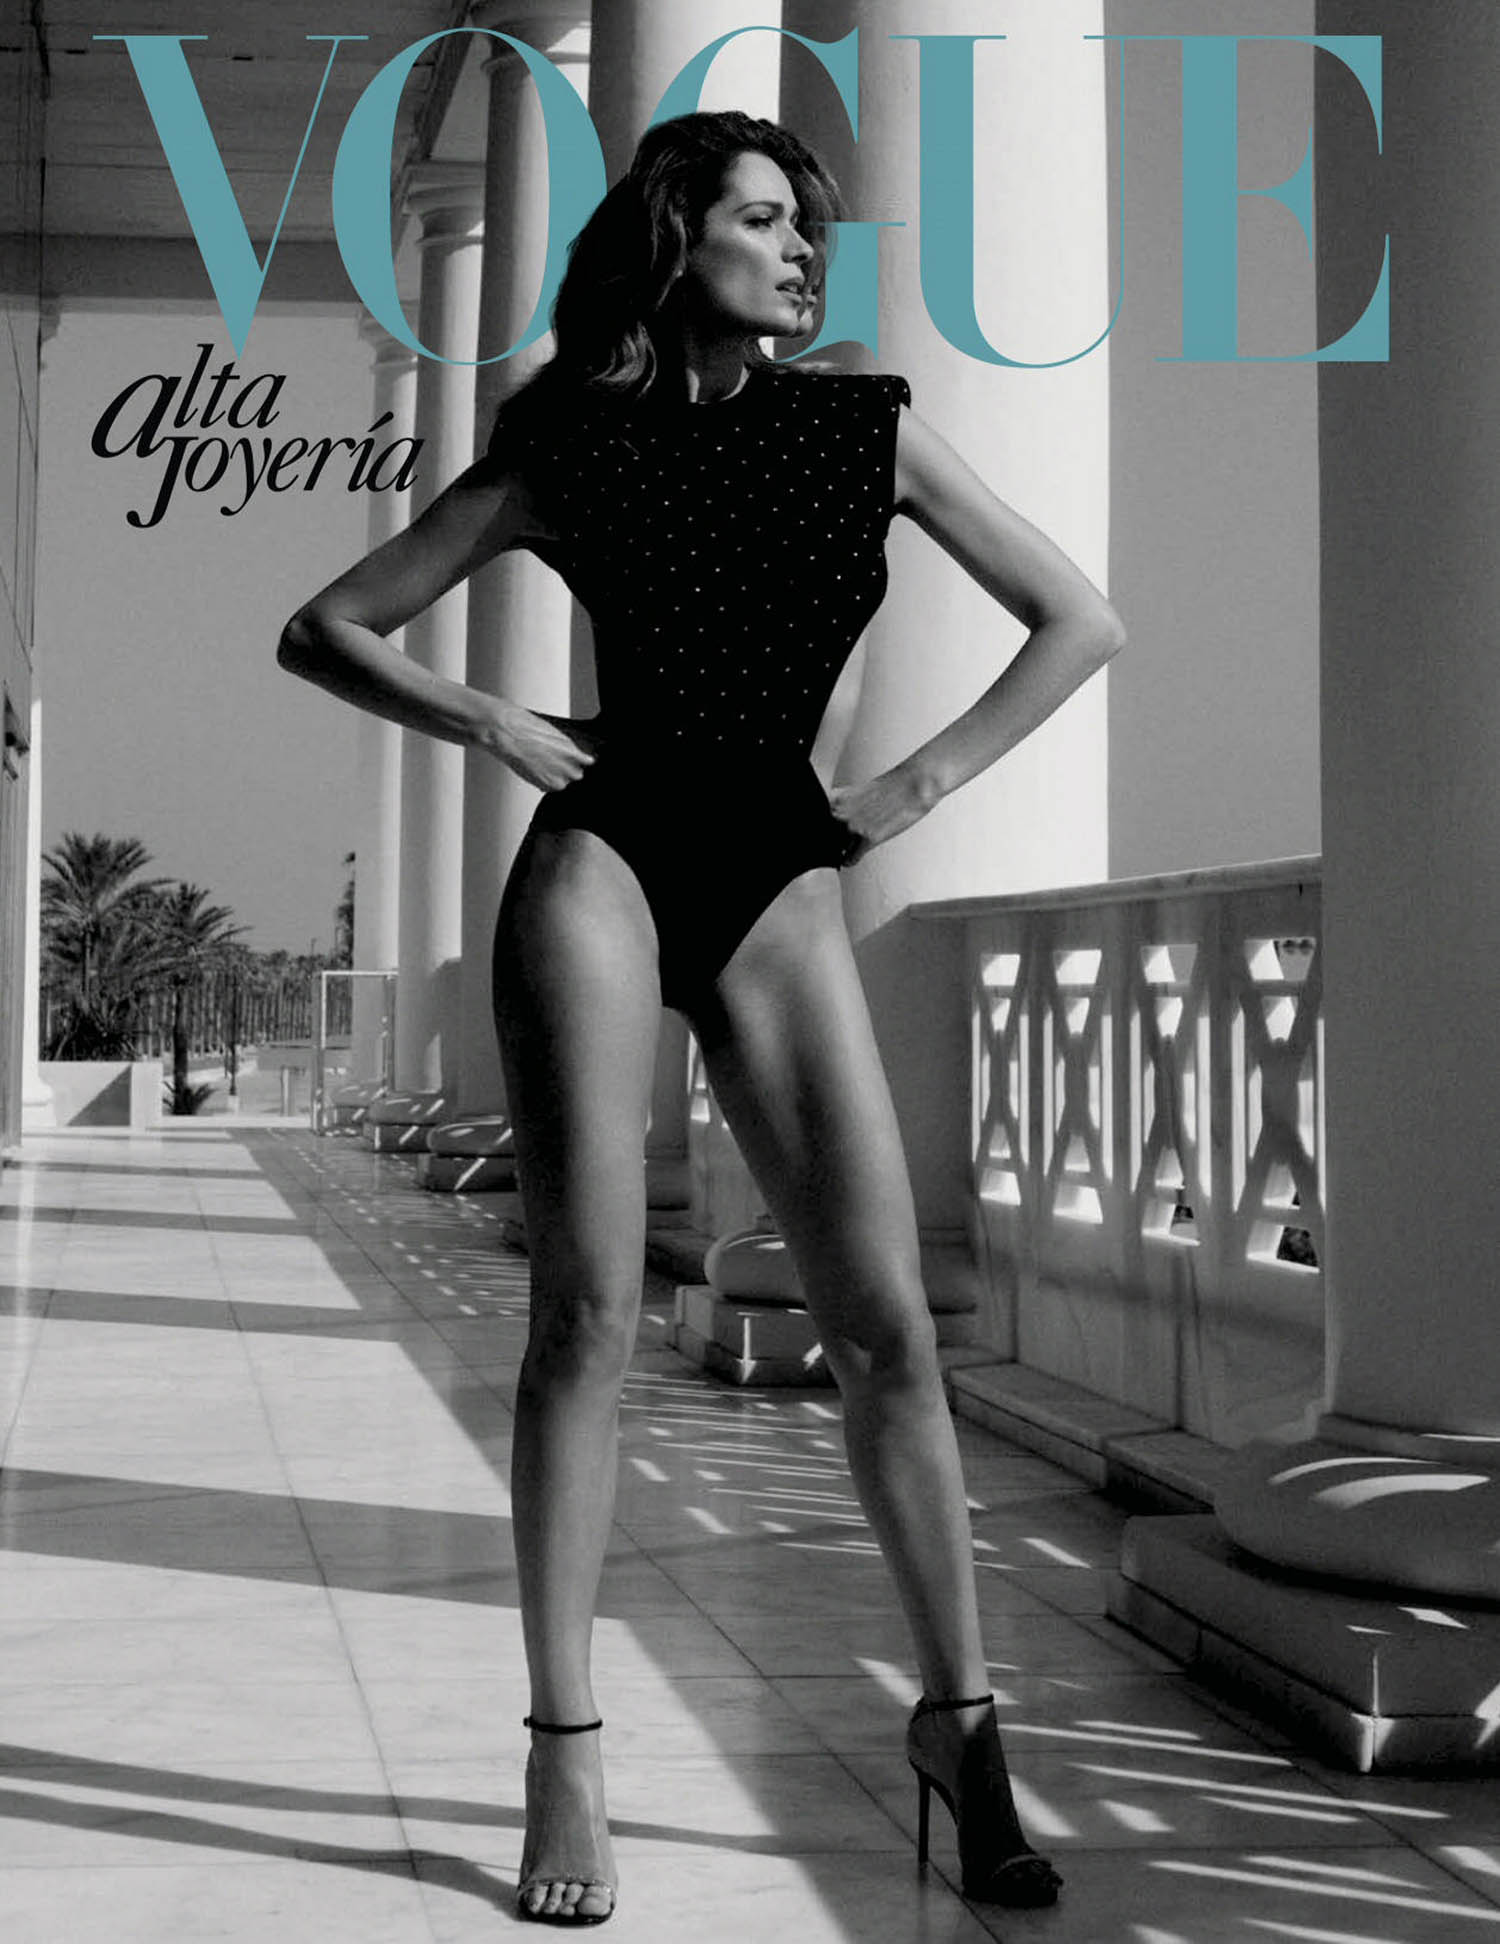 Mar Saura covers Vogue High Jewelry Mexico & Latin America May 2021 by Alvaro Beamud Cortes